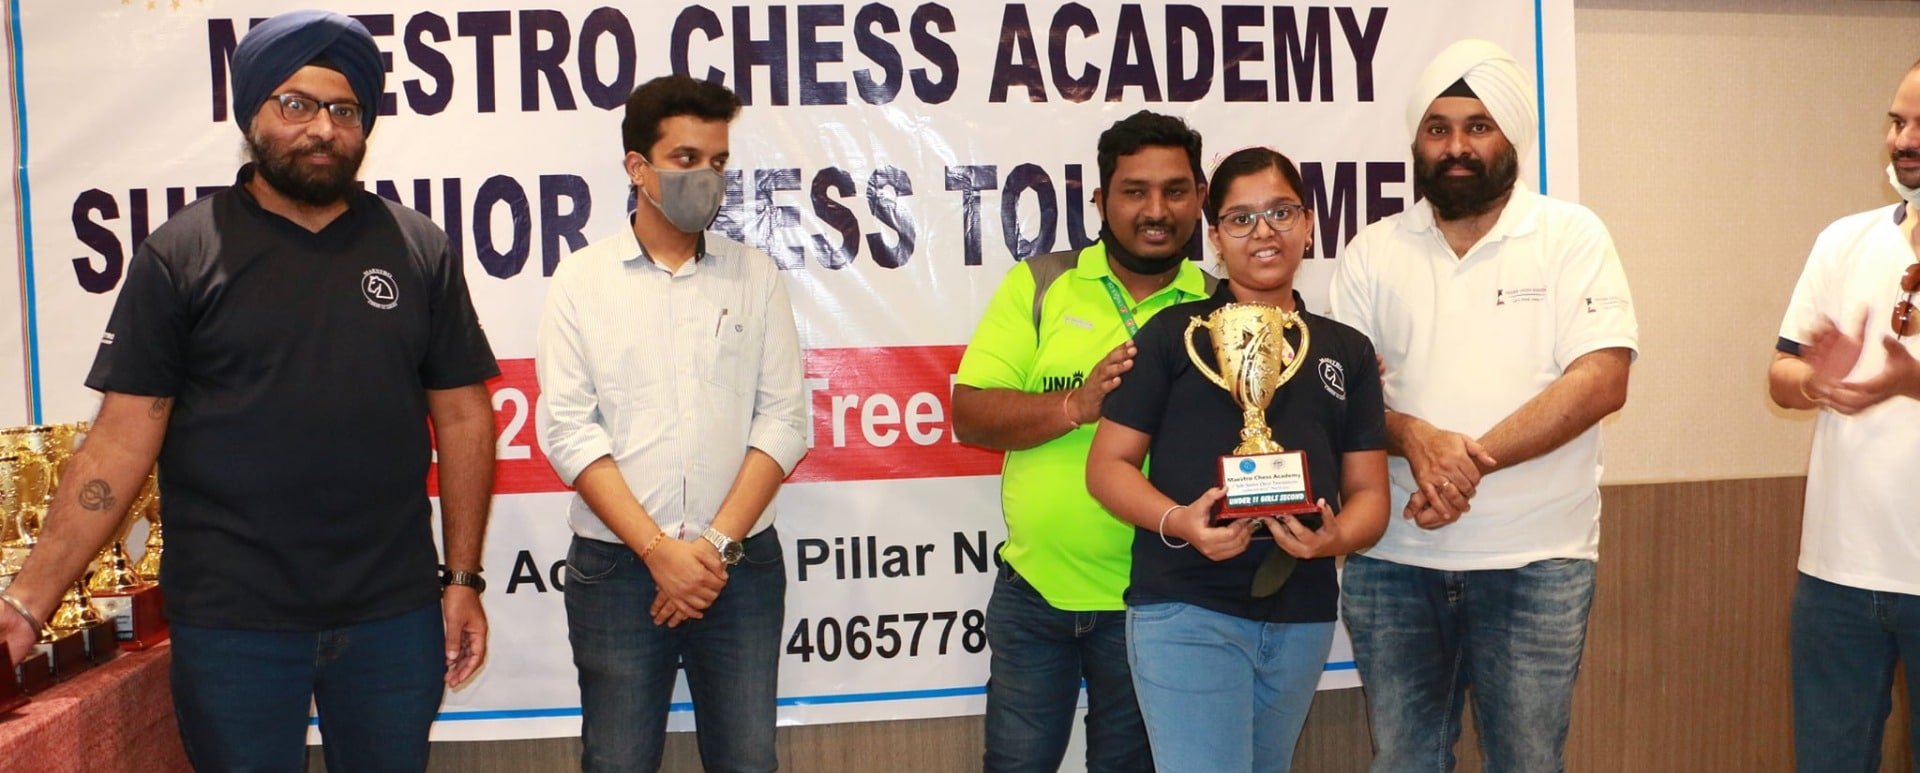 Maestro Chess Academy - Chess Training Institute in Attapur, Hyderabad